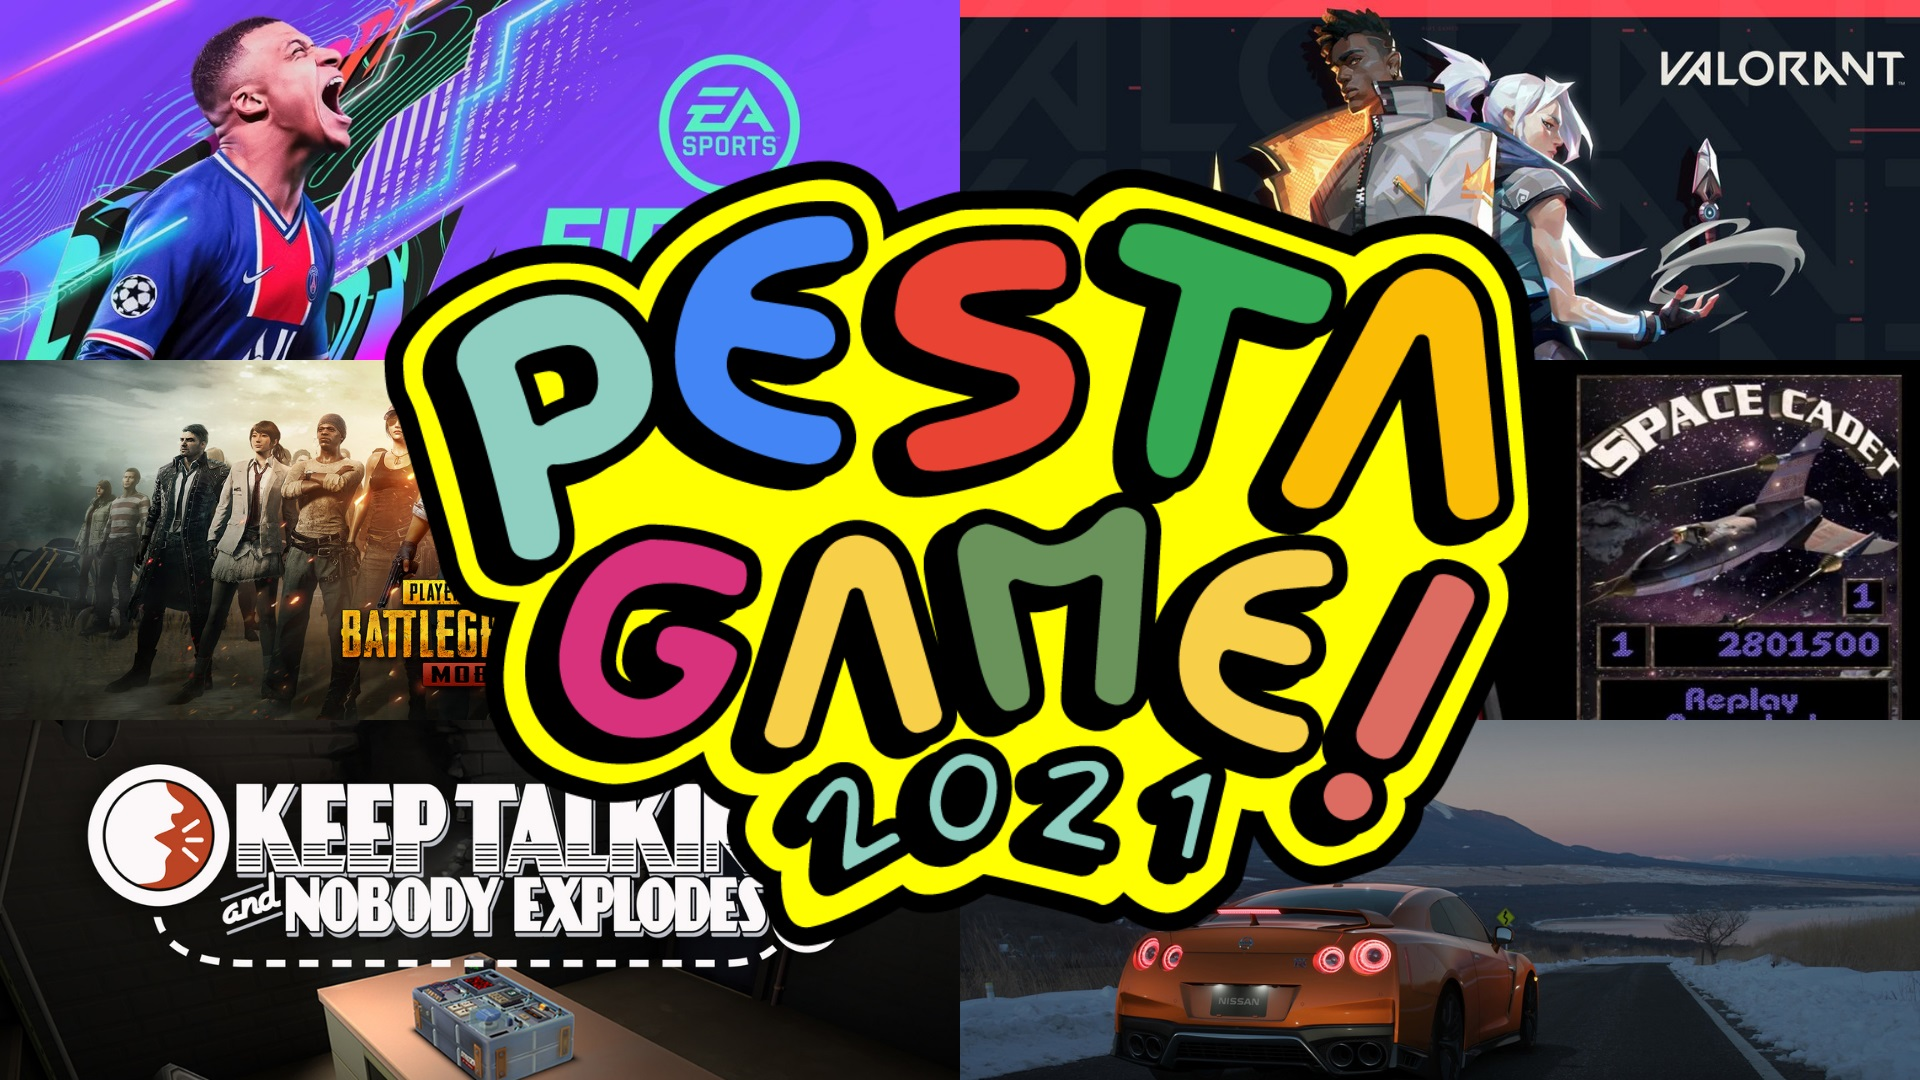 Pesta Game 2021 – Jom main game bersama Youtuber terkenal!